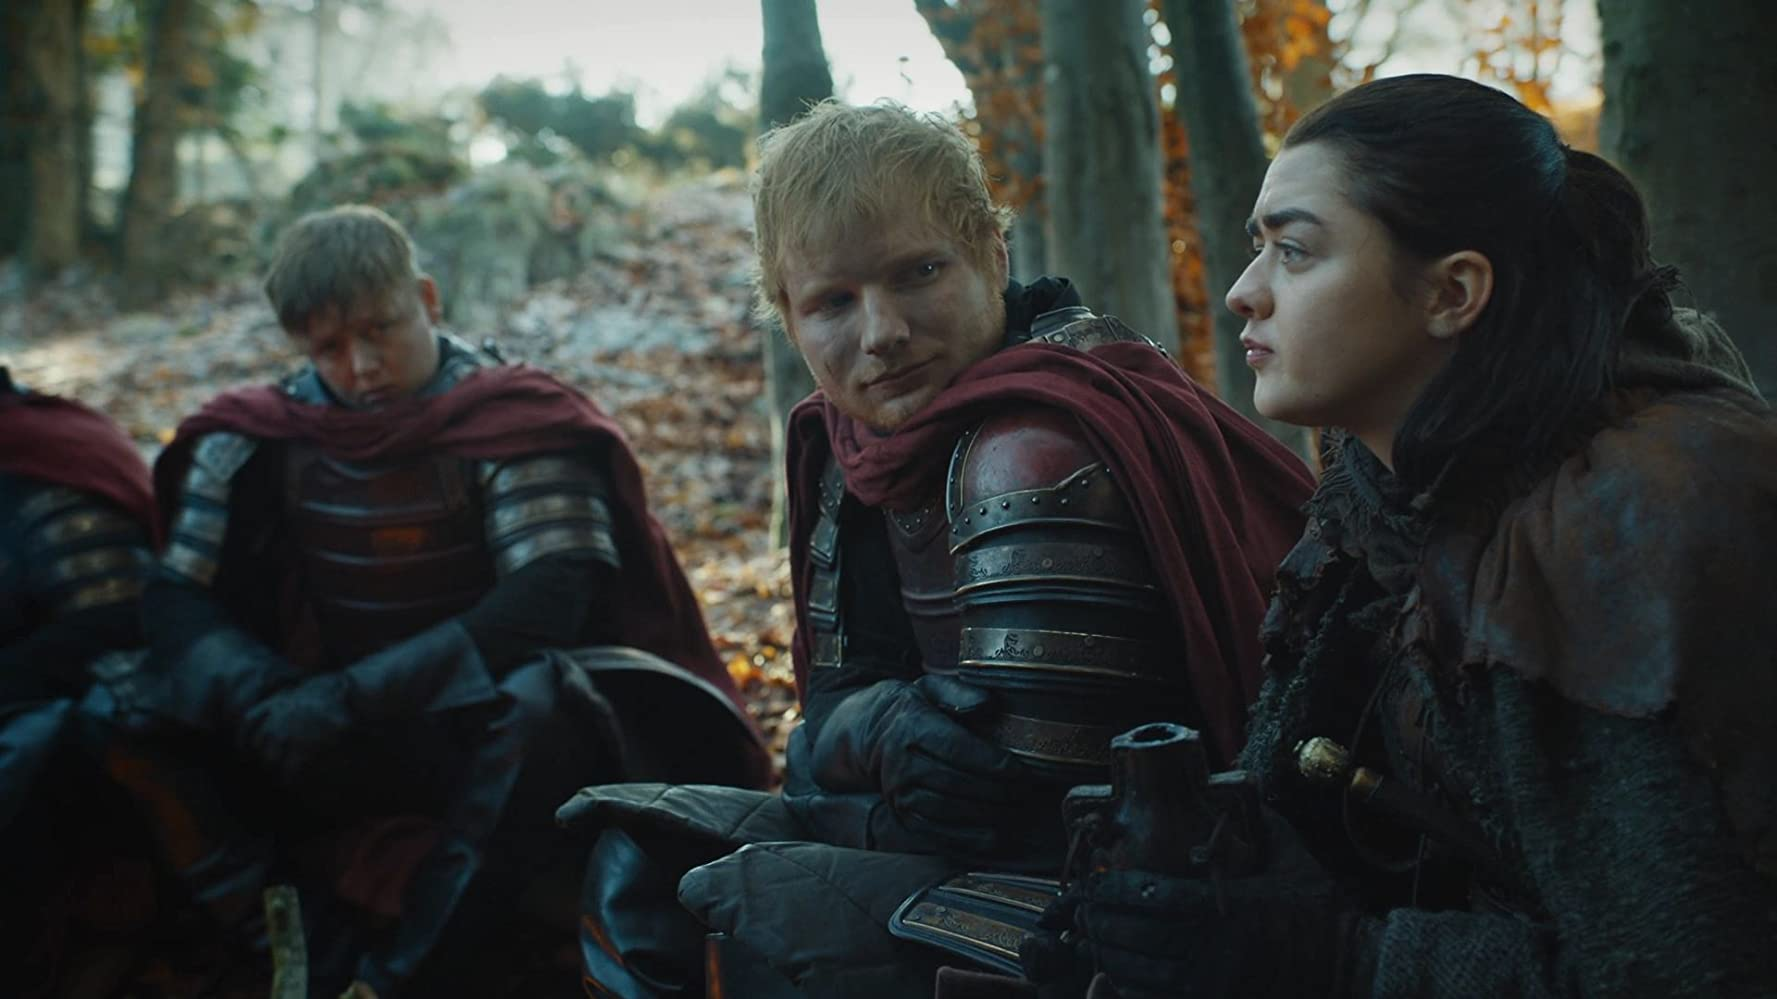 Thomas Turgoose, Ed Sheeran, and Maisie Williams in Game of Thrones (2011)